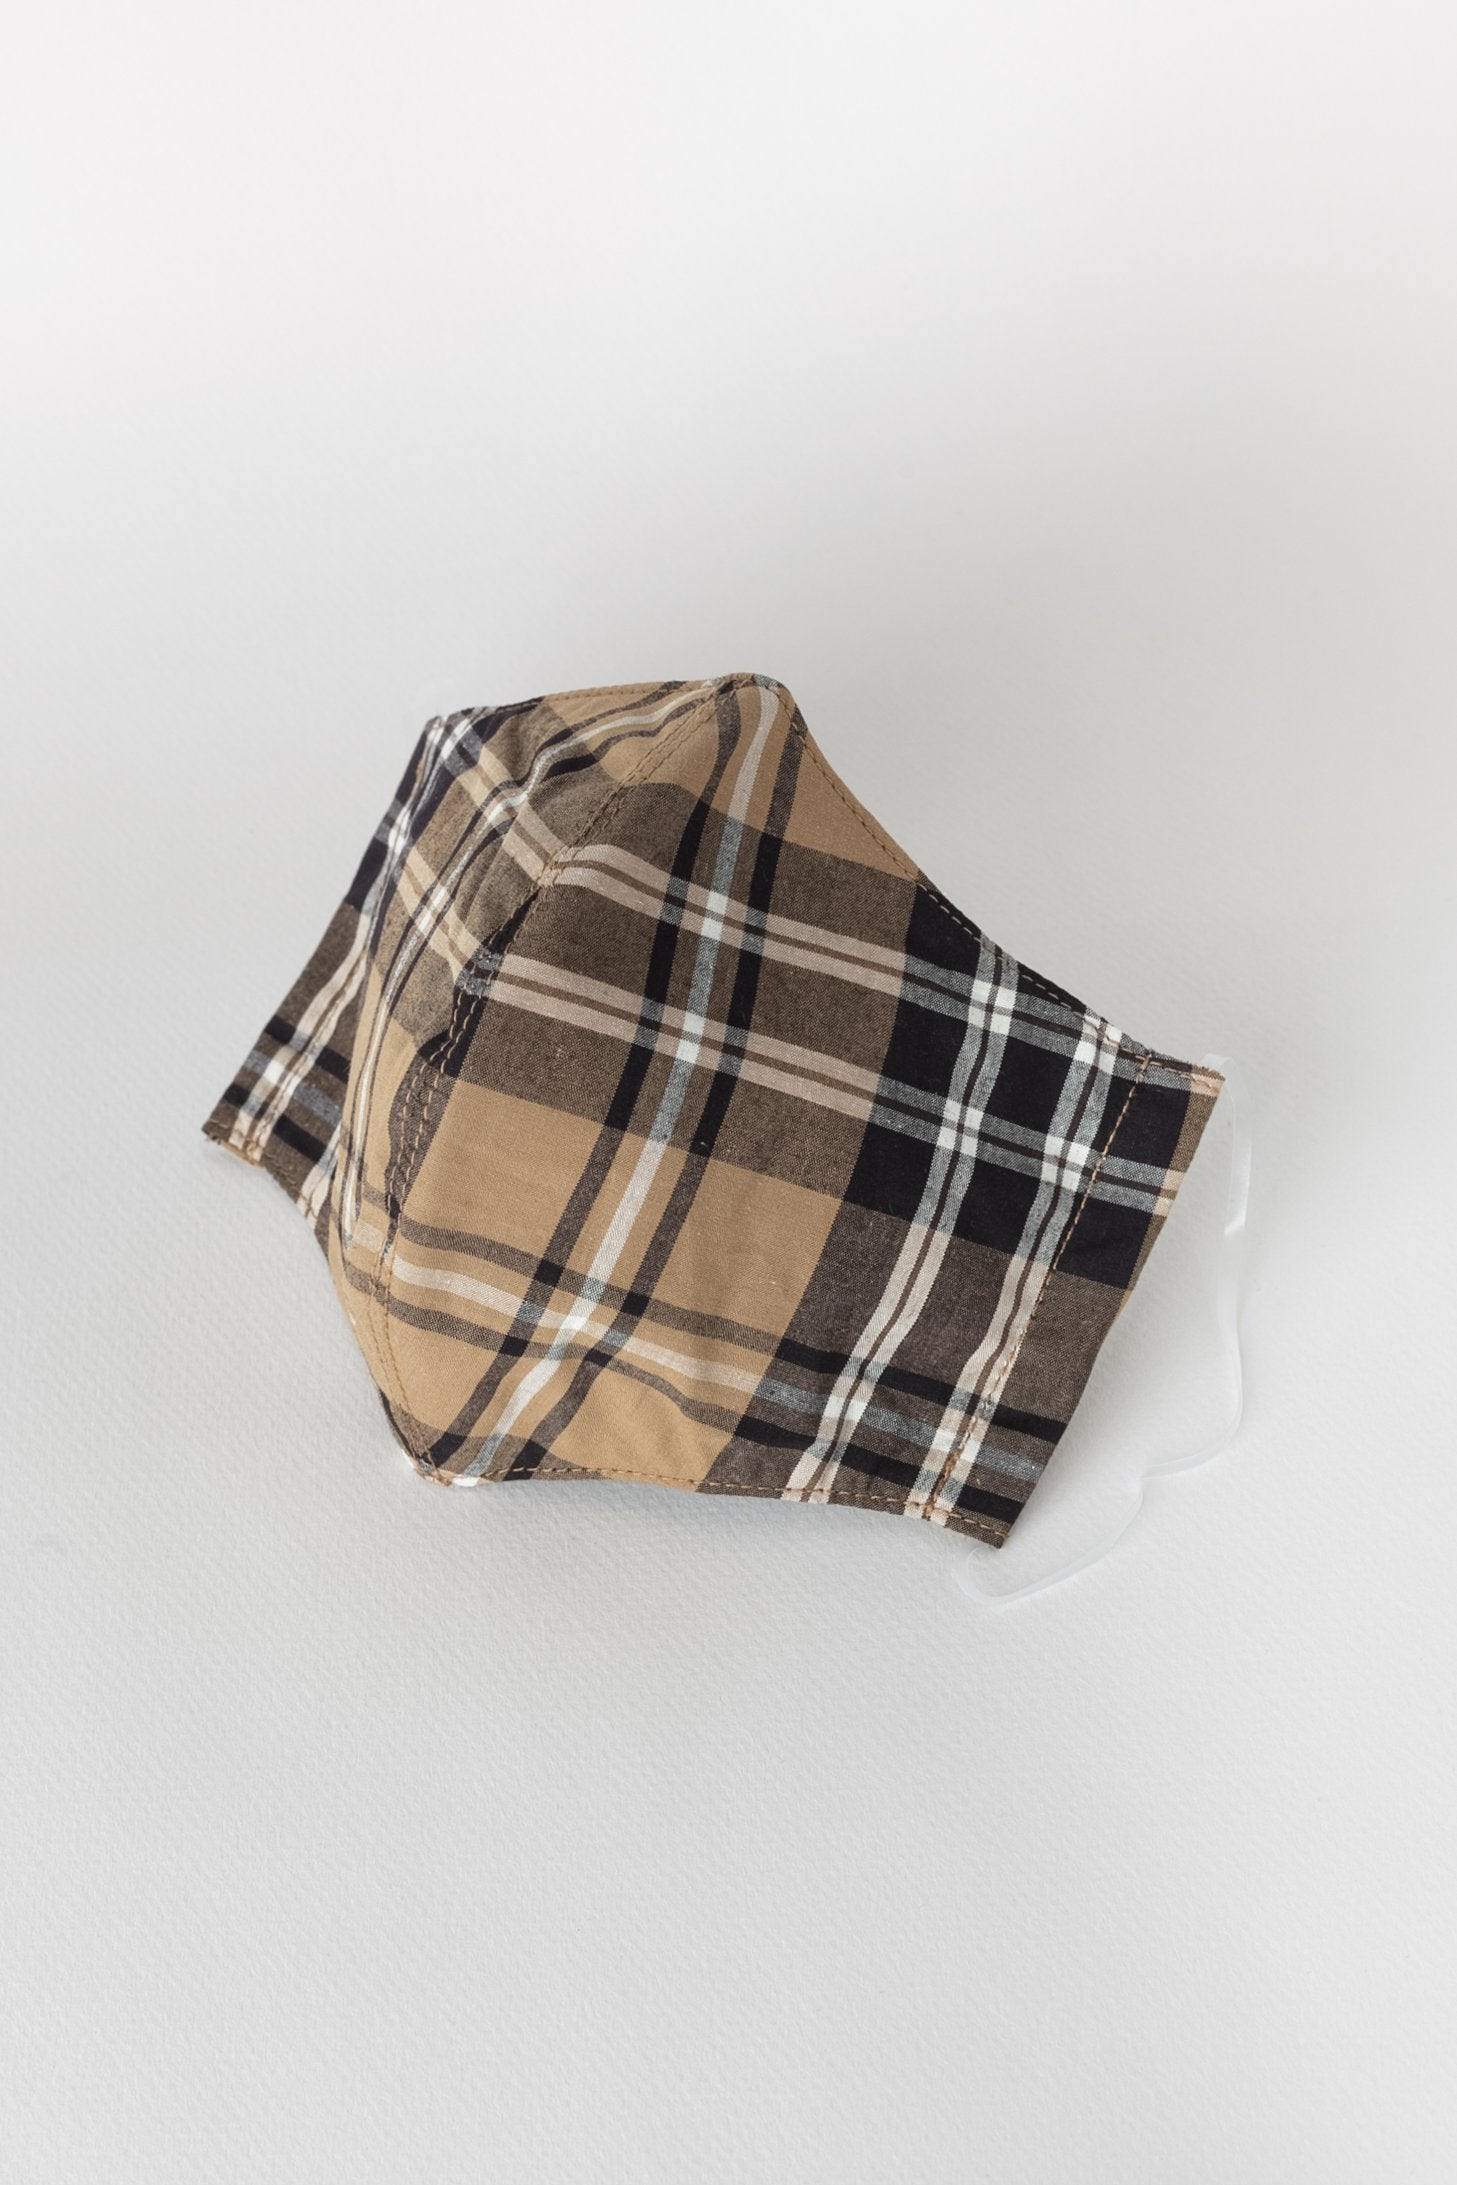 Japanese 40s Tartan Face Mask in Khaki and Black 01